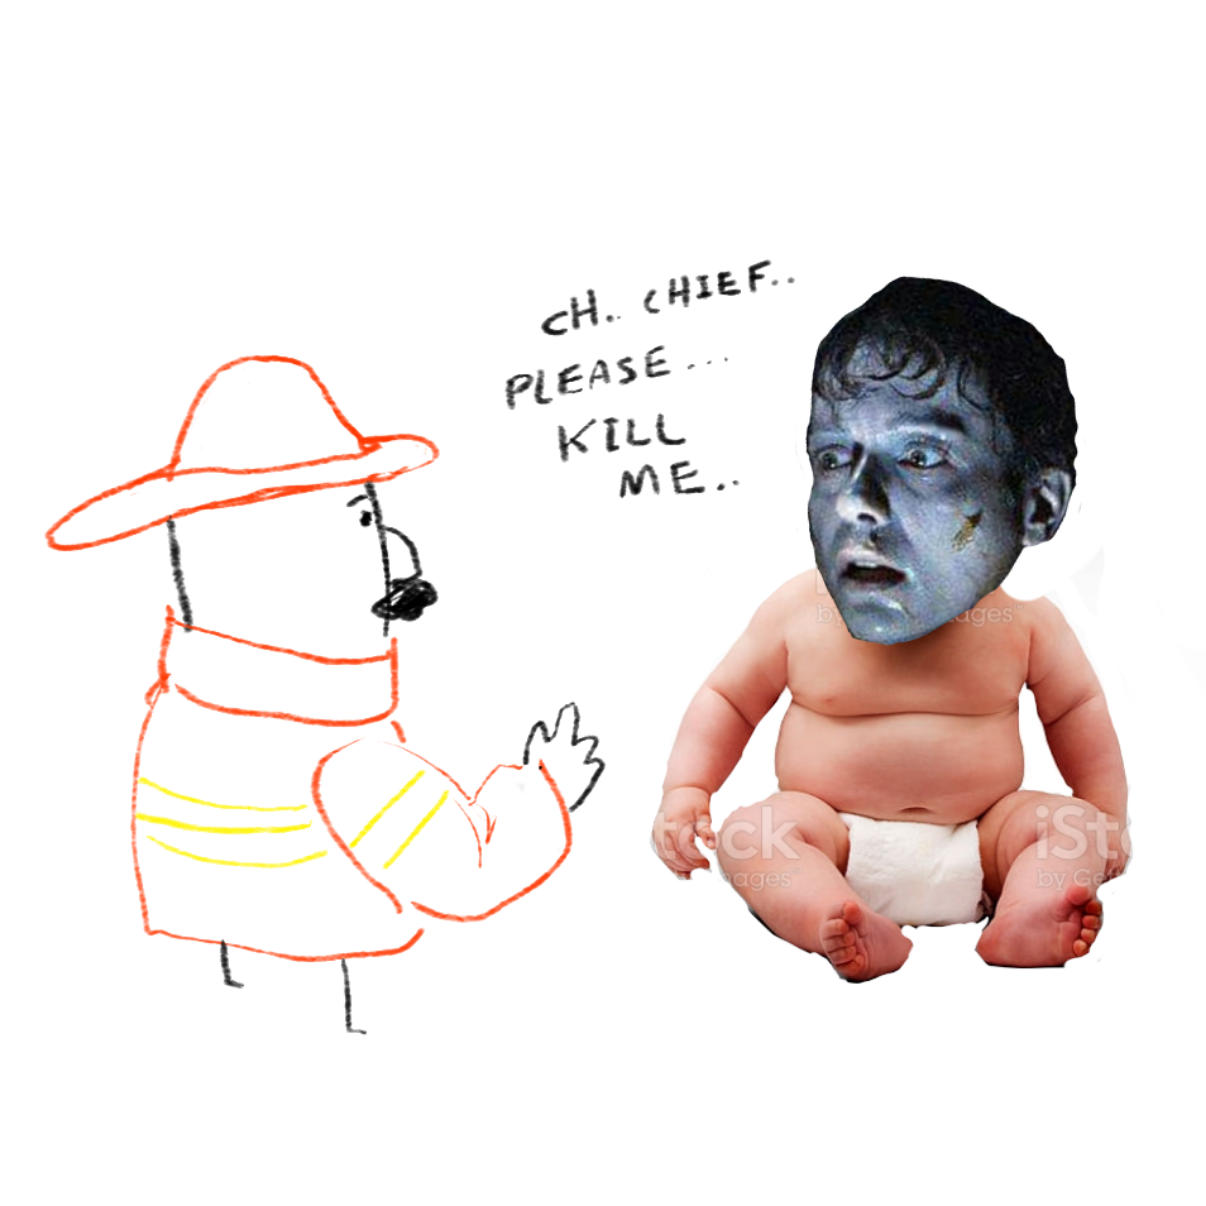 Drawing in Babby adventure by Potato Man